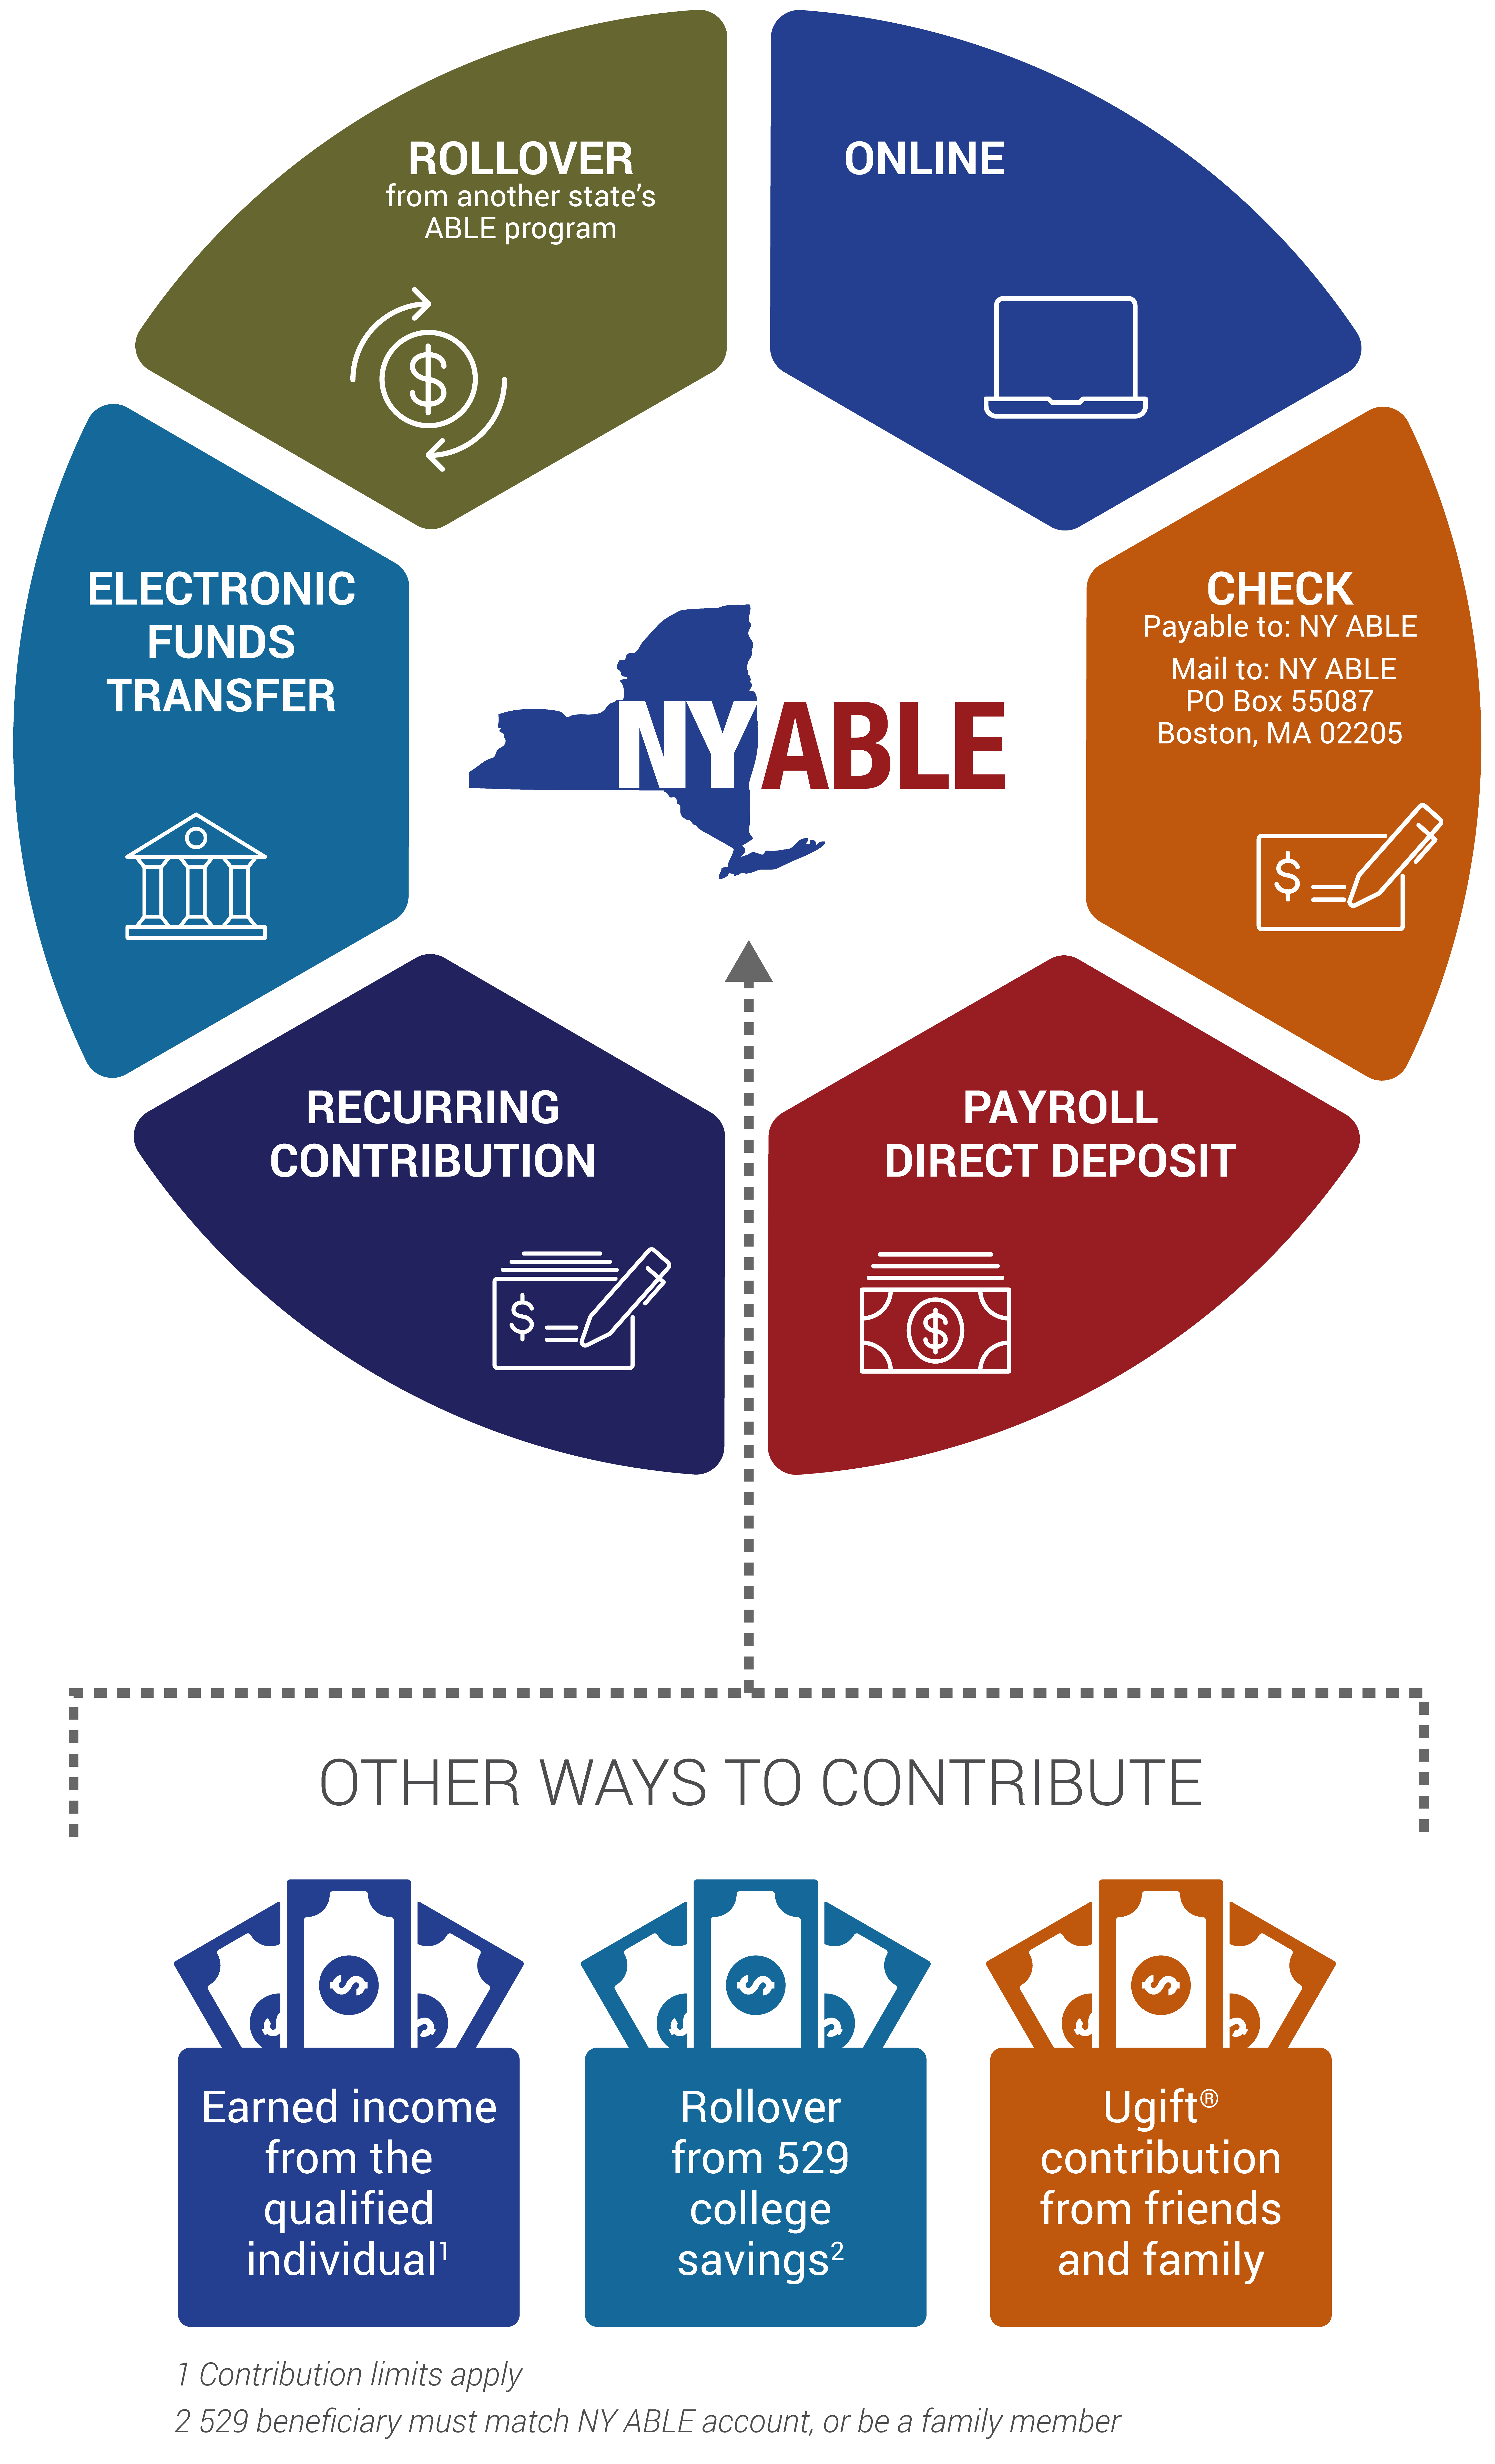 There are various ways to contribute to a NY ABLE account, such as: online via a computer, check (make payable to NY ABLE and mail to: NY ABLE, PO Box 55087, Boston, MA 02205), payroll direct deposit, recurring contribution, electronic funds transfer, rollover from another state's ABLE program. There are even three more ways to contribute to a NY ABLE account: Earned income from the qualified individual. Contribution limits apply, Rollover from 529 college savings. 529 beneficiary must match NY ABLE account, or be a family member, Ugift® contribution from friends and family